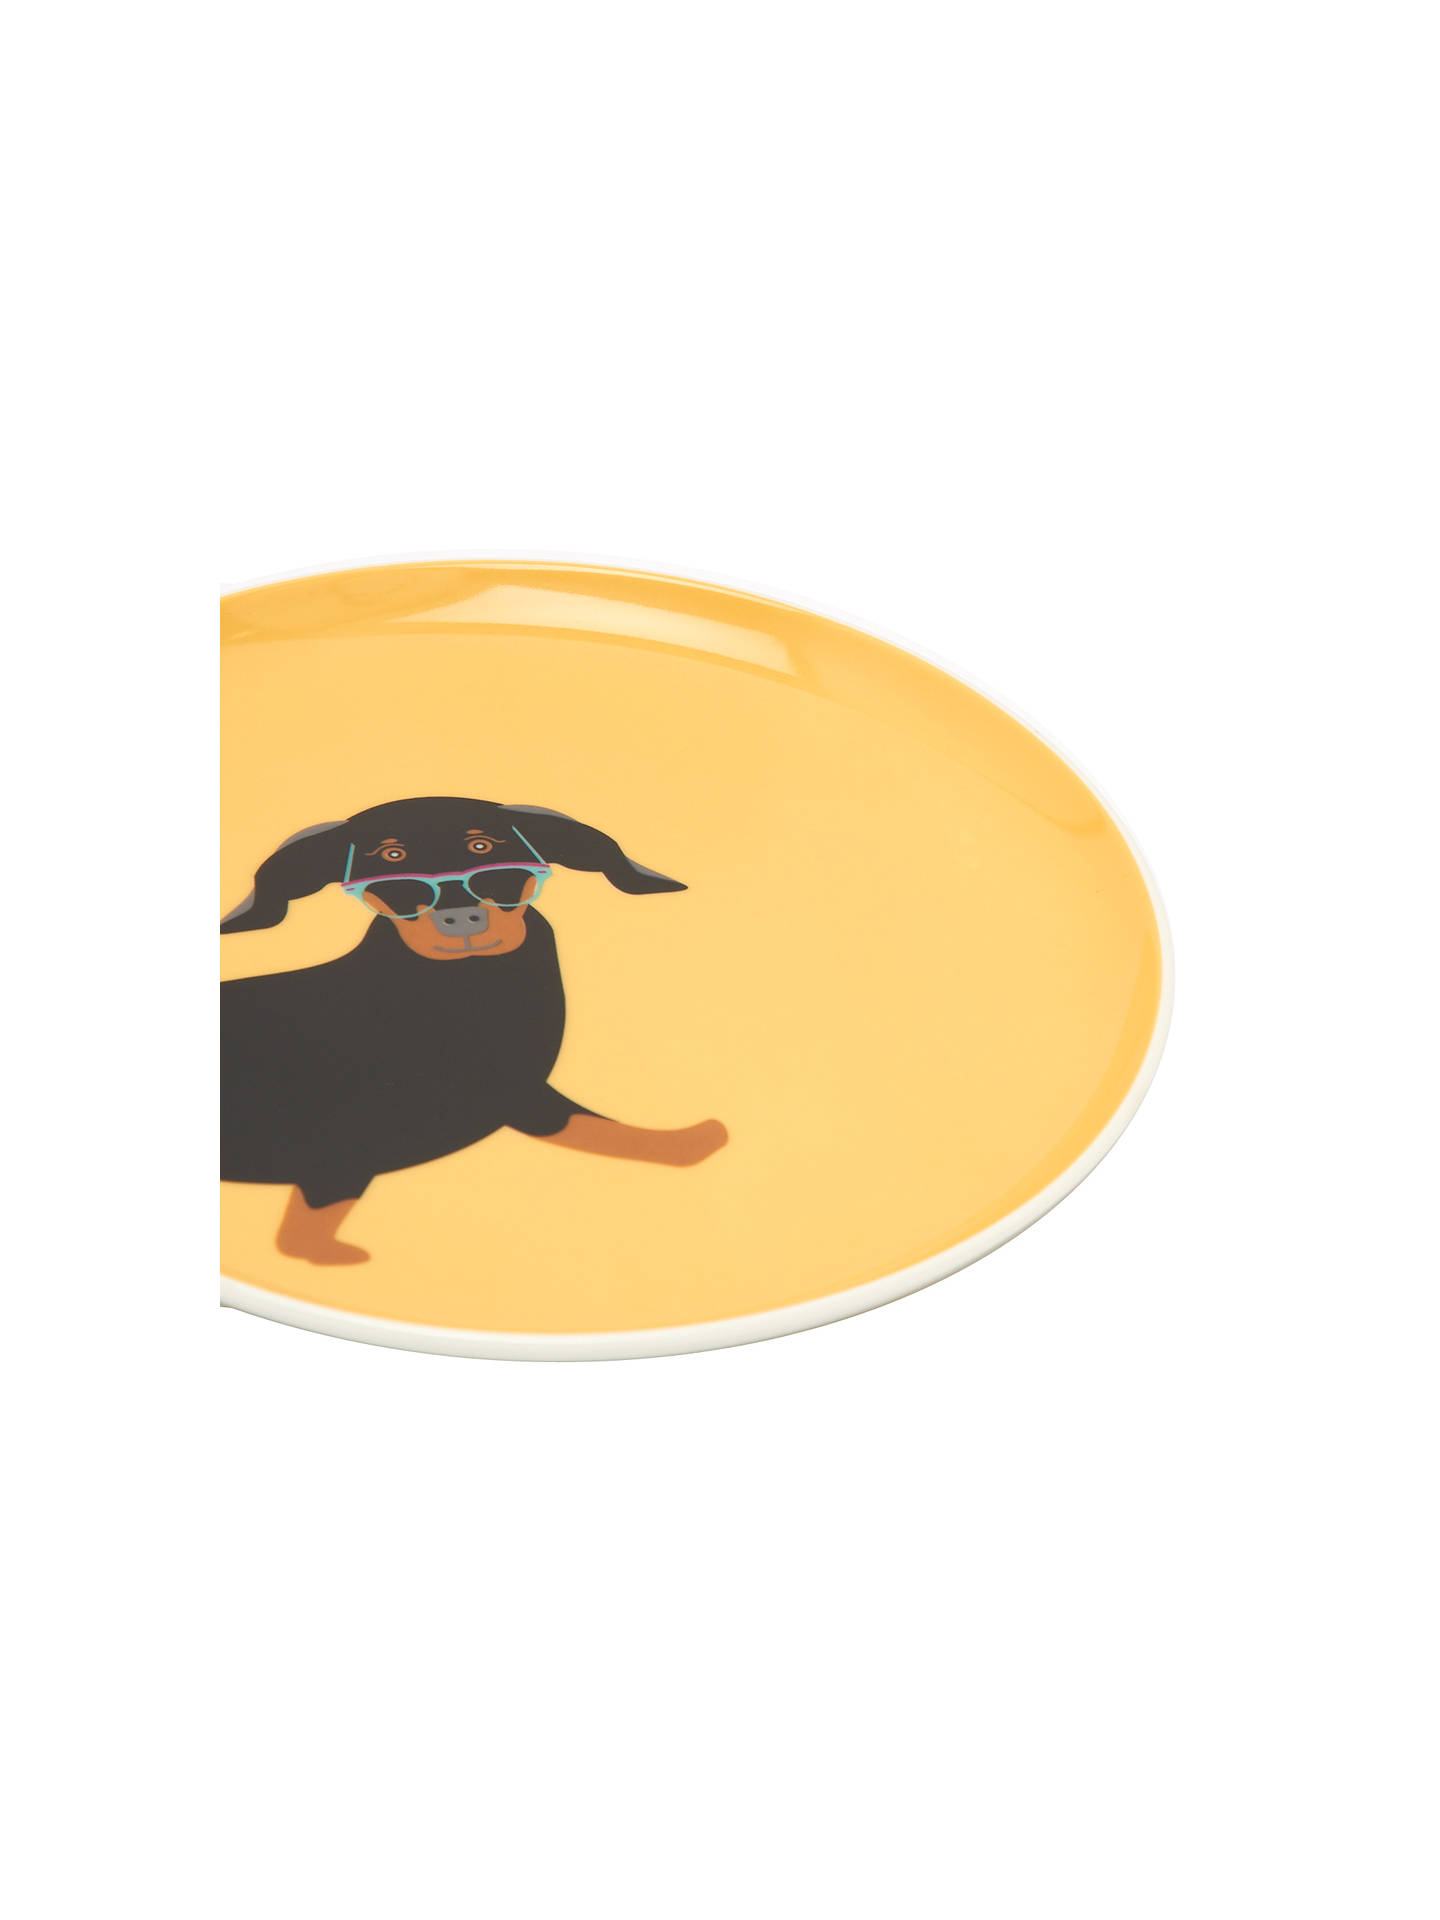 BuyJoules Dachshund Single Side Plate, Yellow Online at johnlewis.com